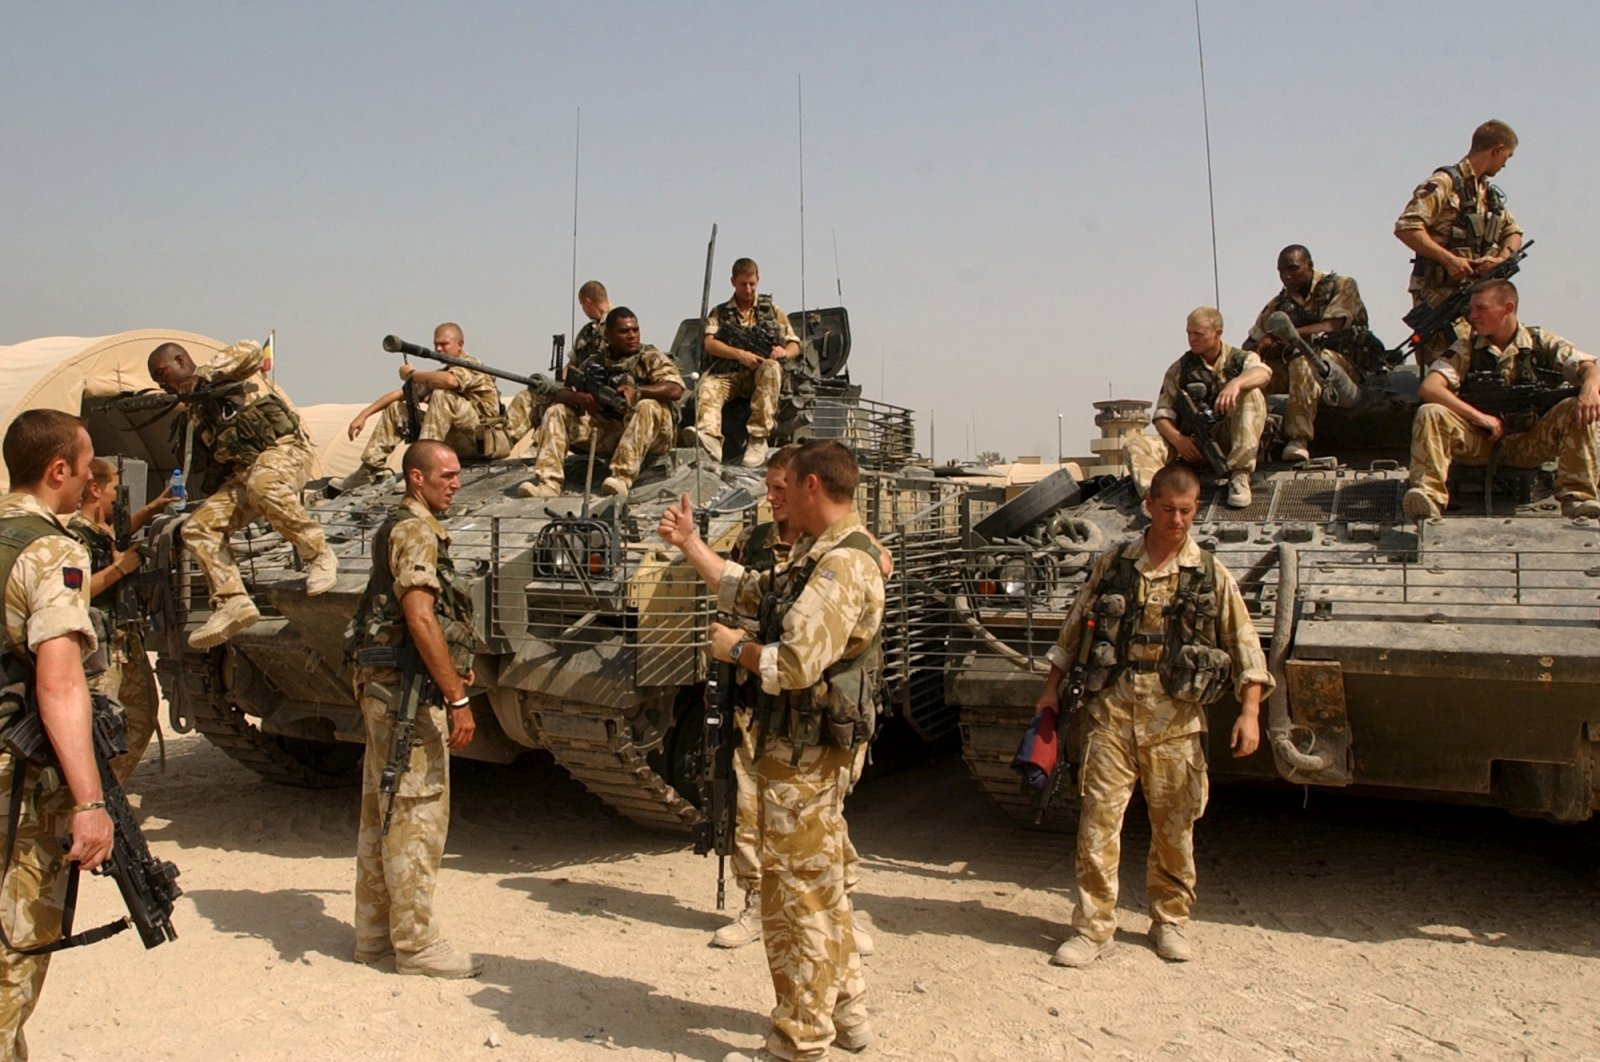 British soldiers stand by armored combat vehicles in Basra, 550 kilometers (340 miles) southeast of Baghdad, Iraq, Oct. 7, 2005. (AP Photo)